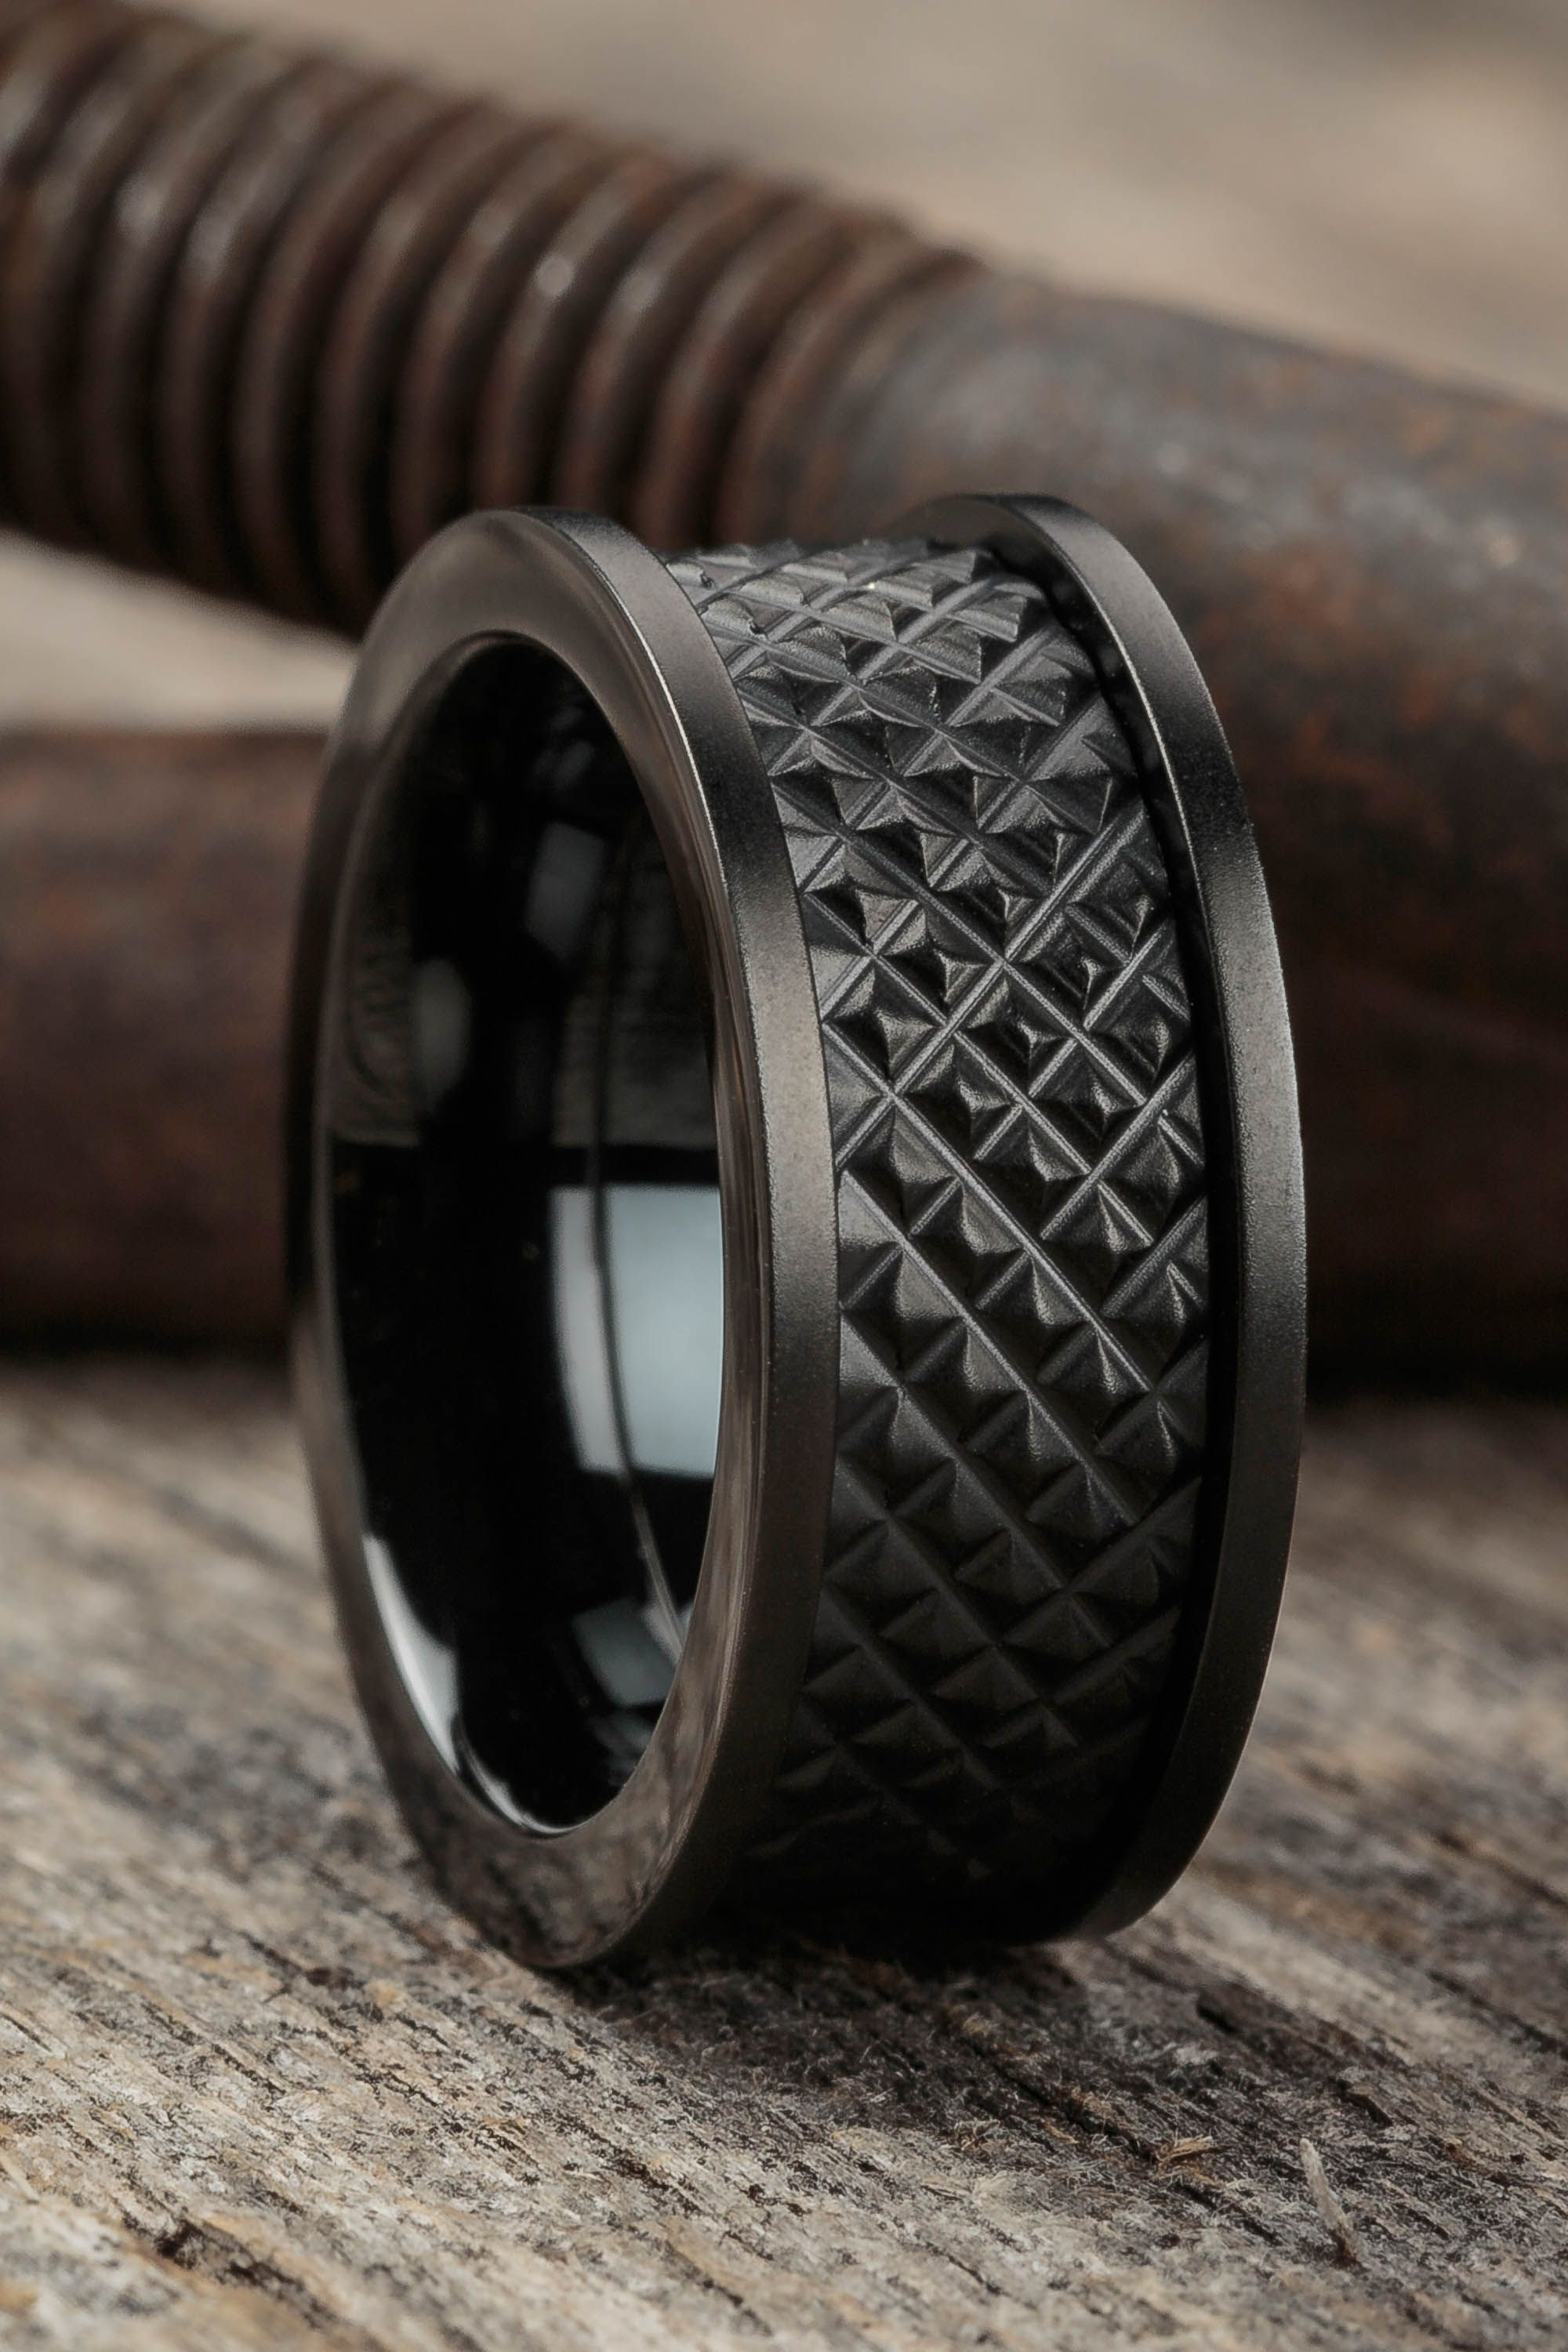 full tire tireding choose photo bands best ring luxury tread set mudding elegant of ideas mud how size rings wedding